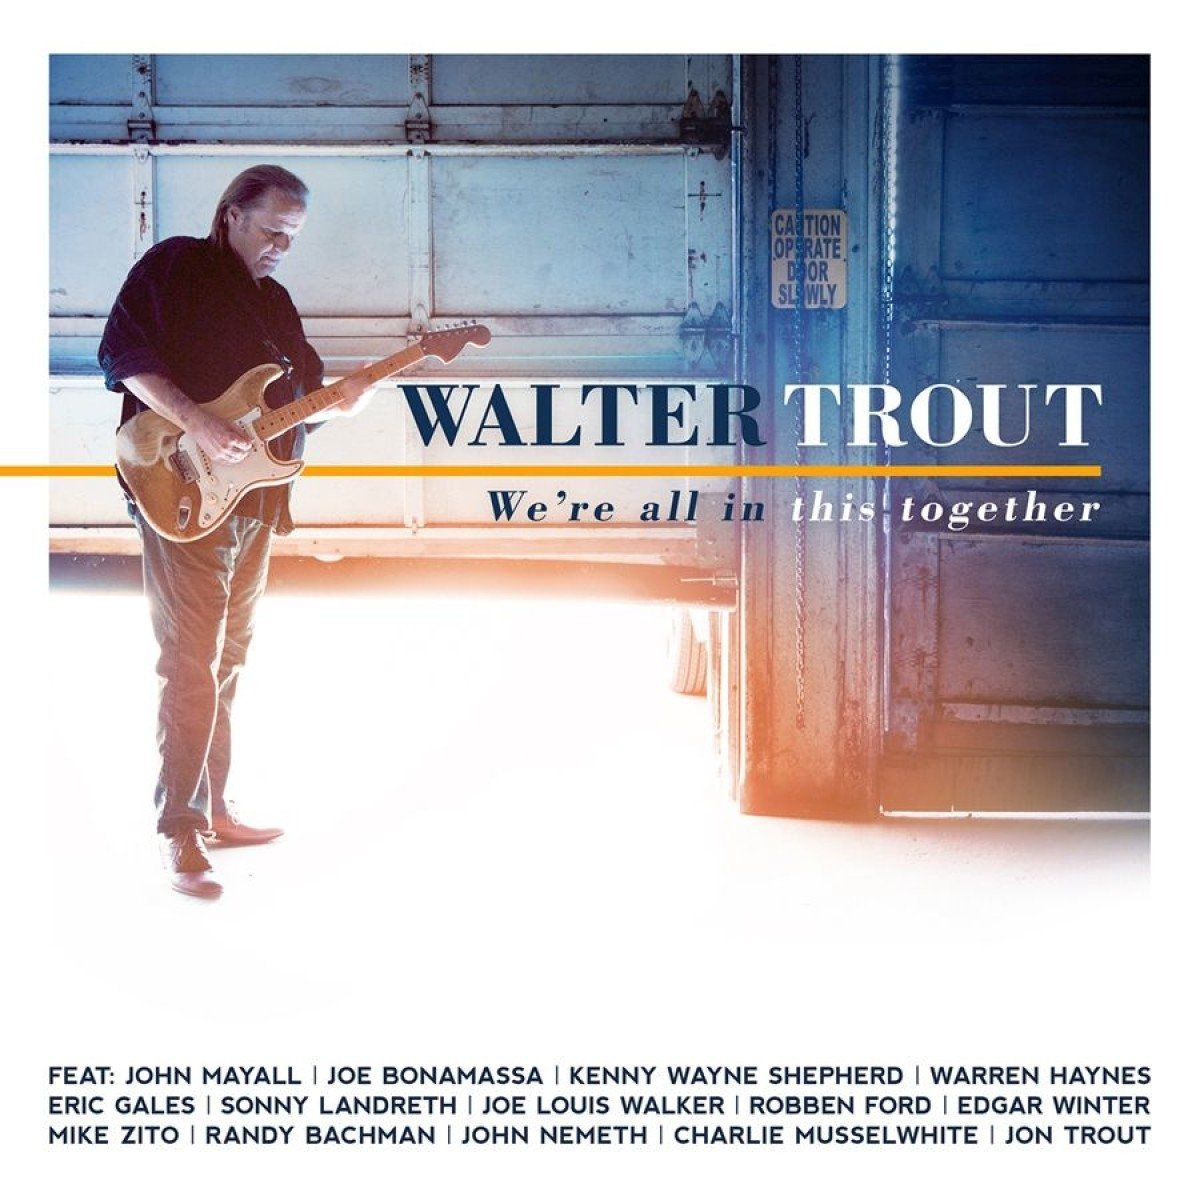 Album cover image for Walter Trout We're All In This Together